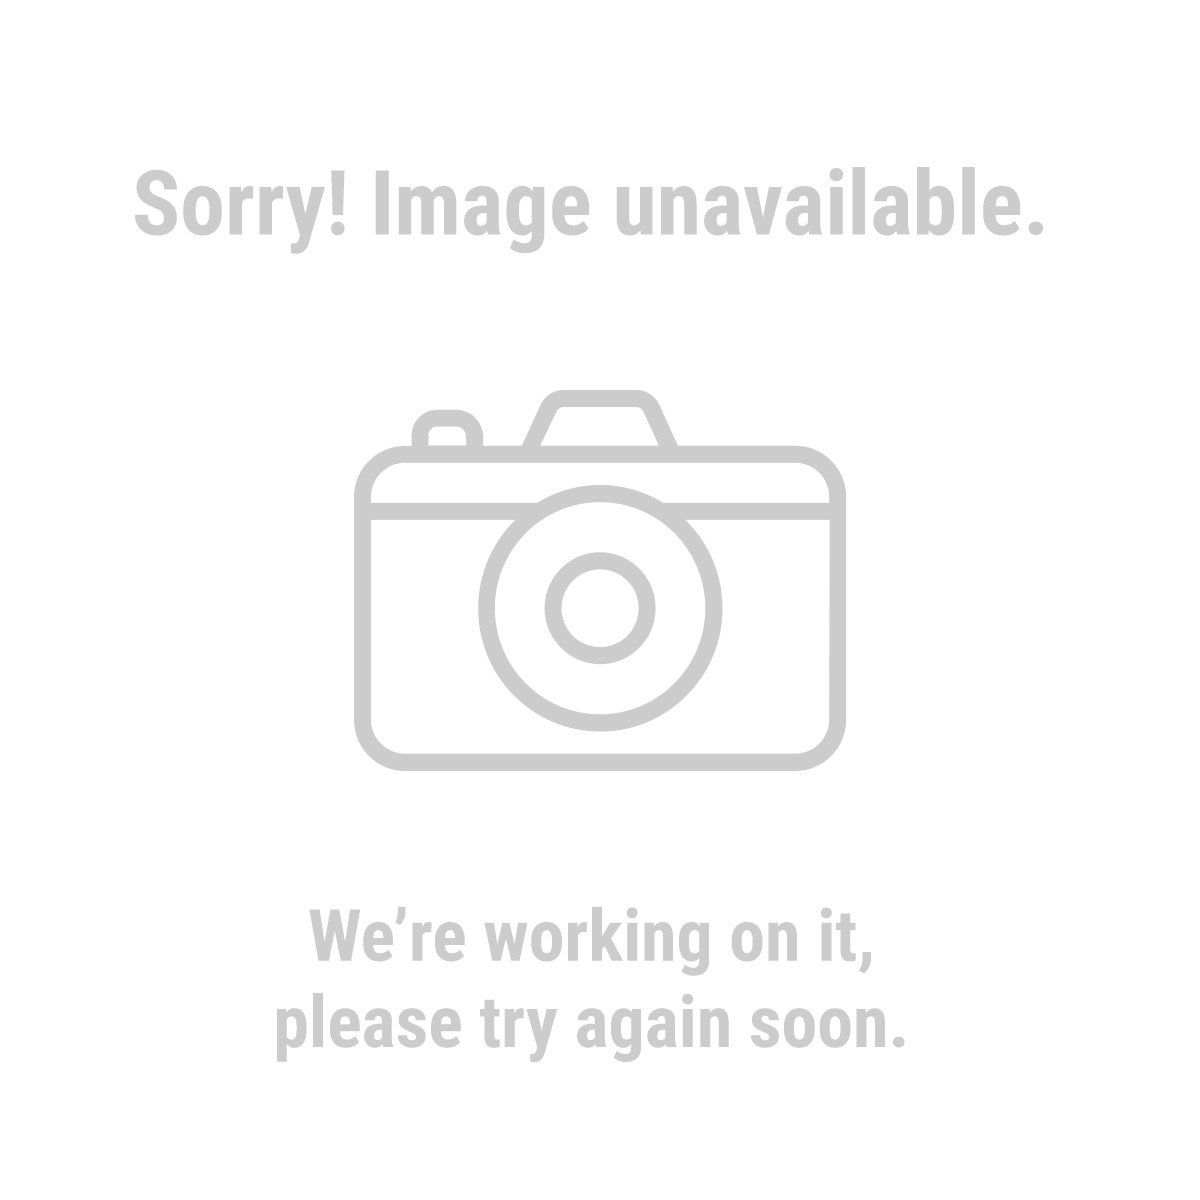 Predator Engines 69728 212cc, 4000 Watts Max/3200 Watts Rated Portable Generator - Certified for California